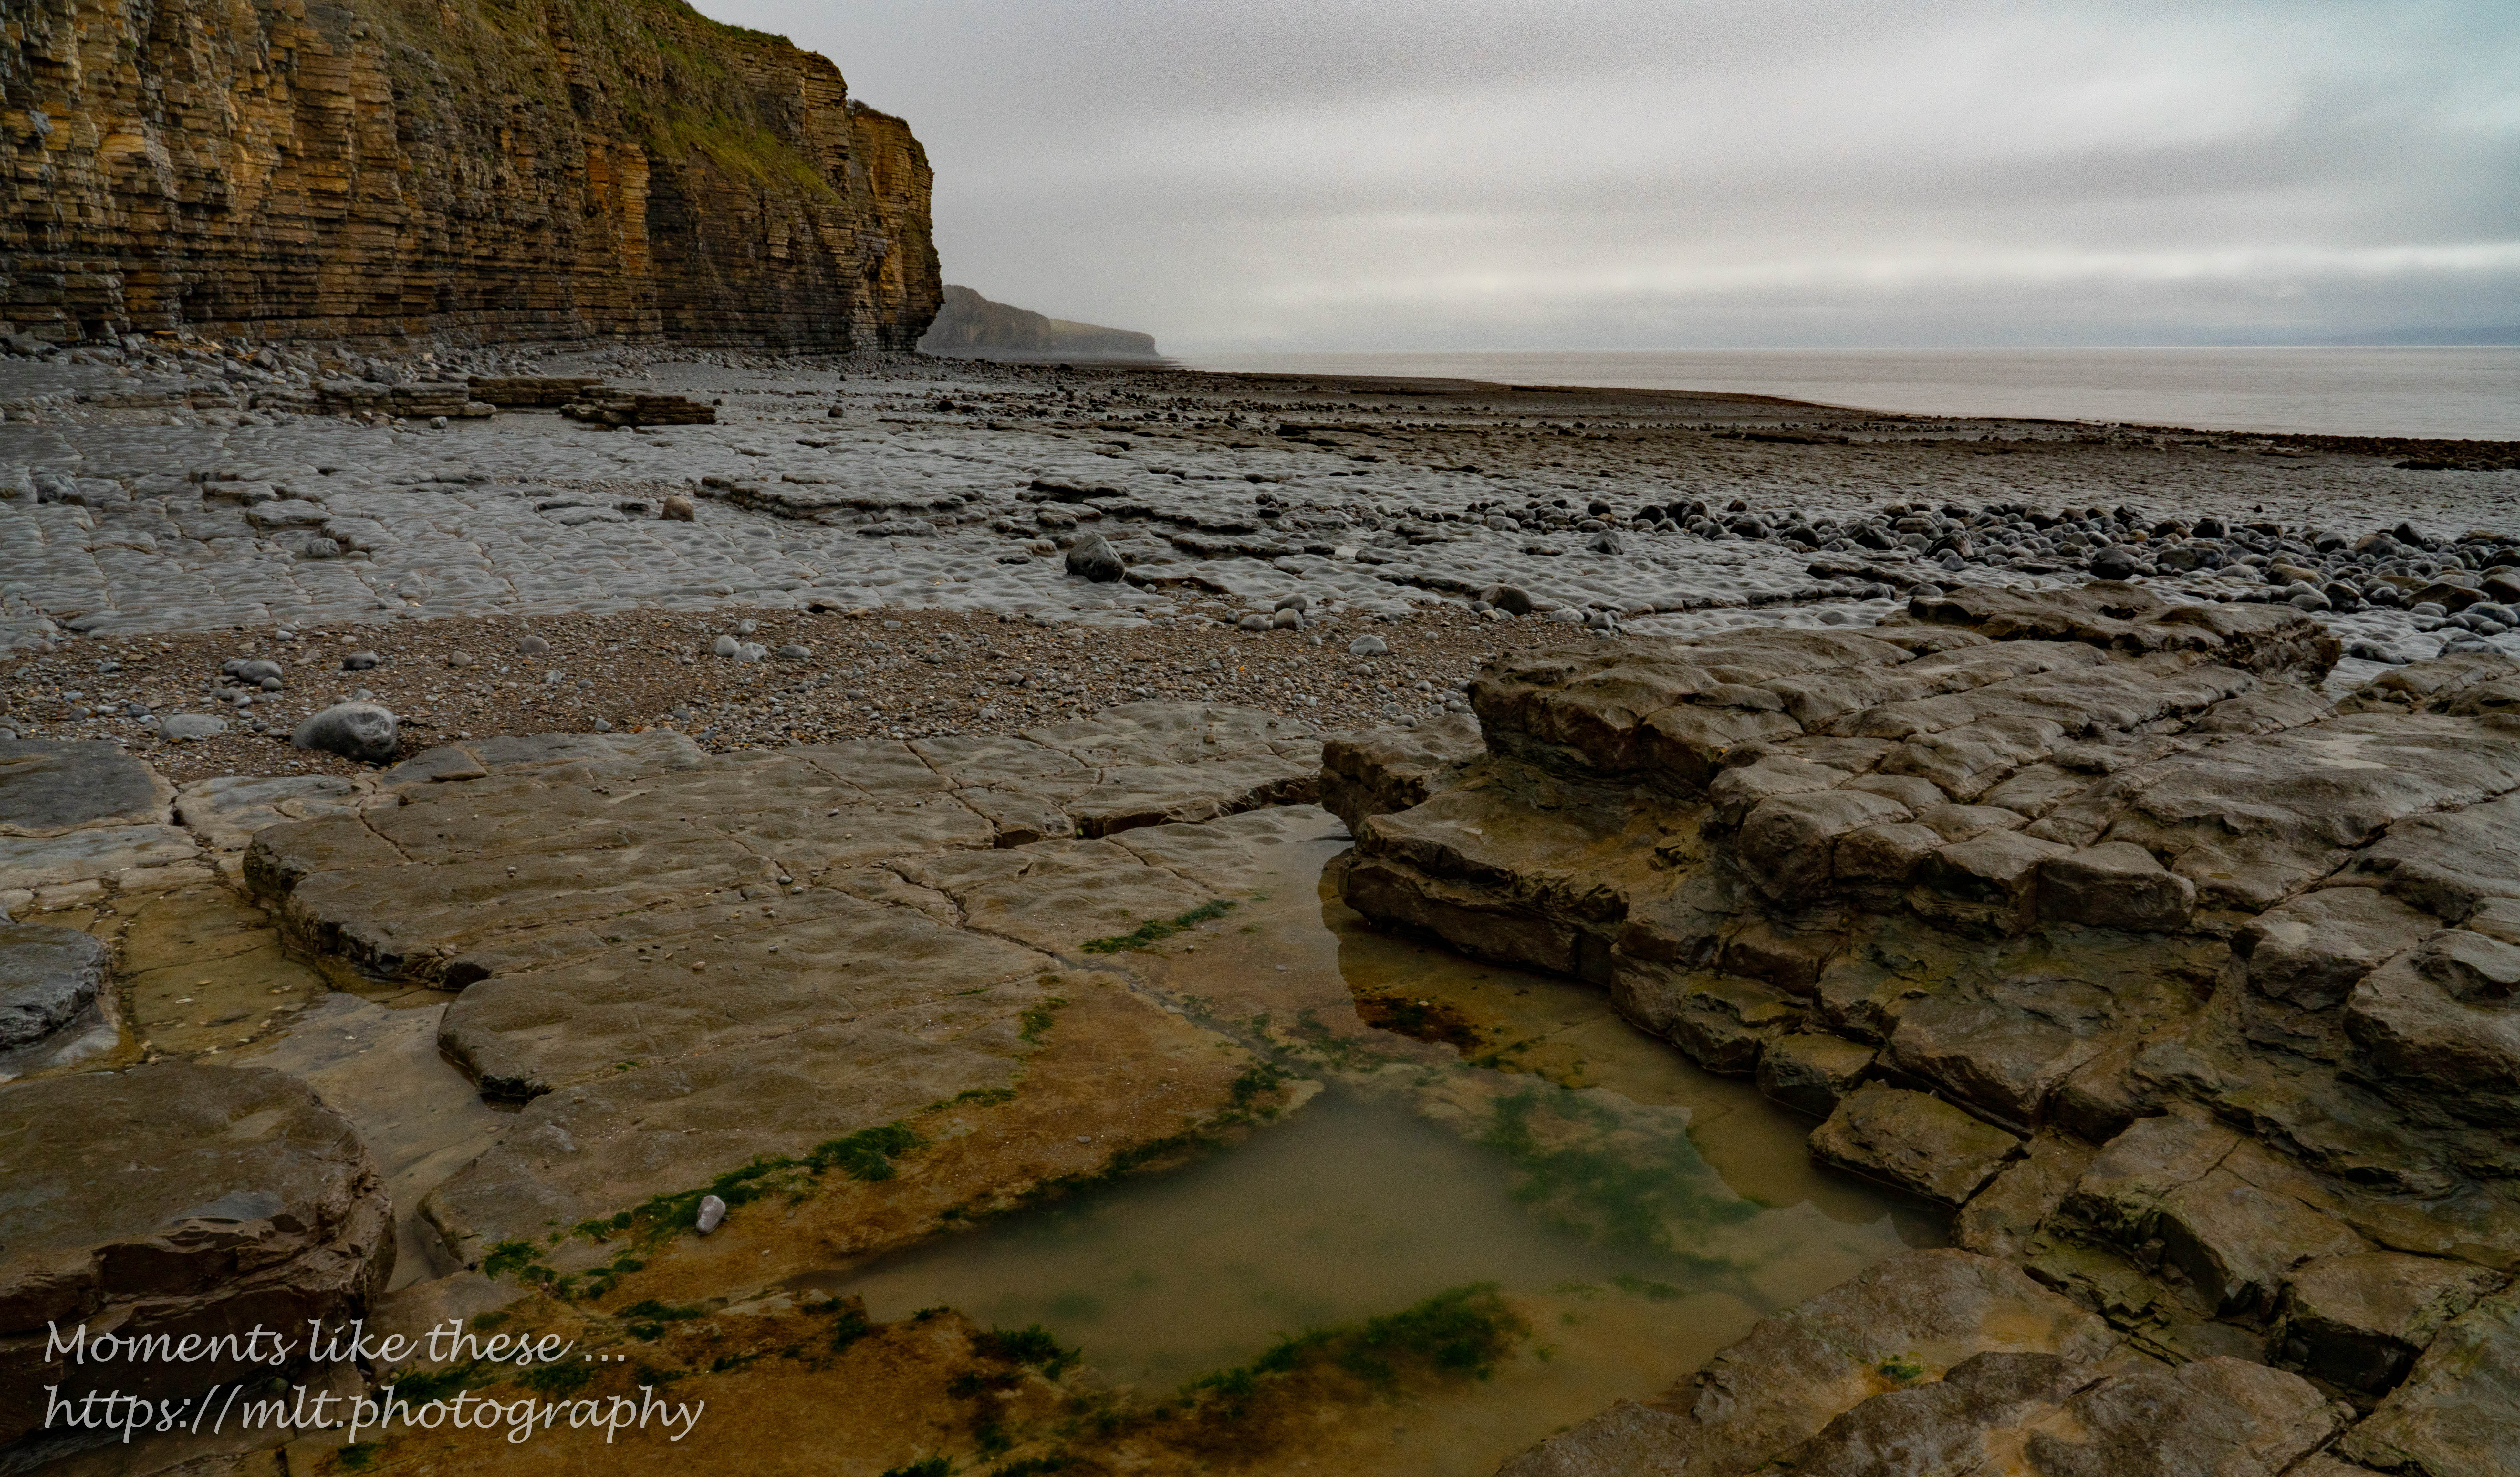 At low tide as the mist clears